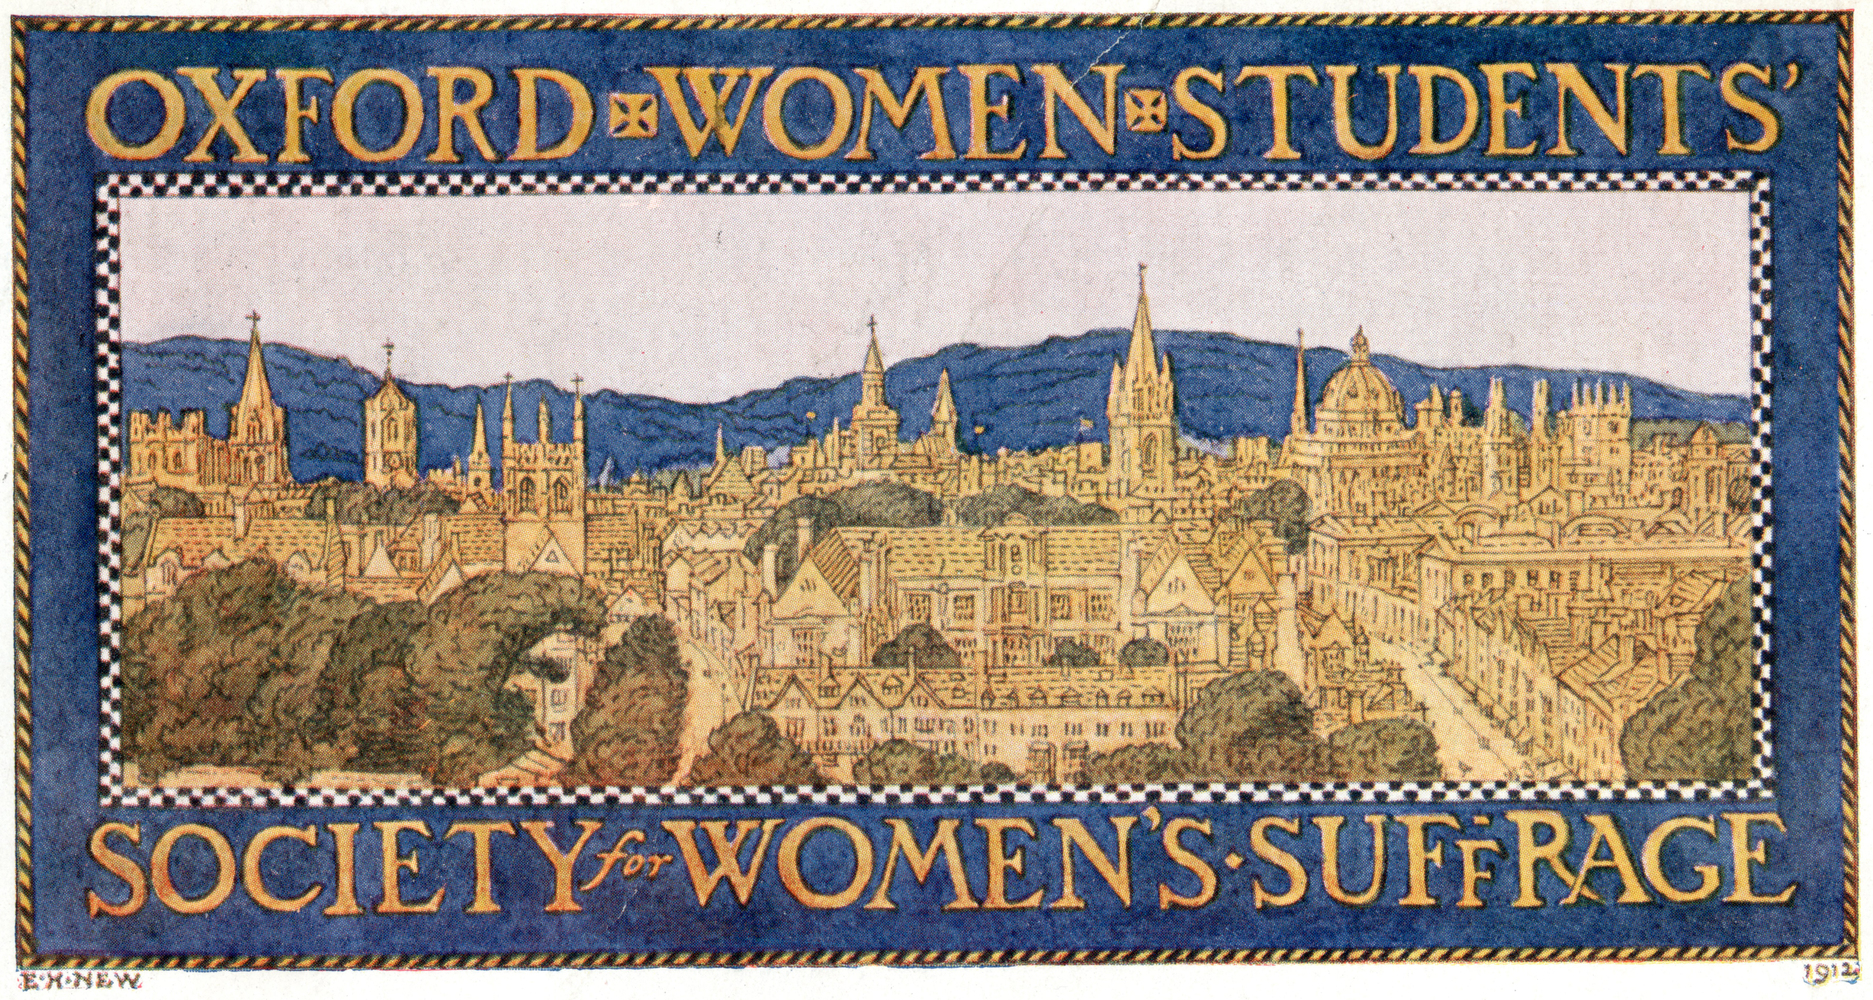 Postcard, Oxford Women Students Society for Women's Suffrage, c. 1912